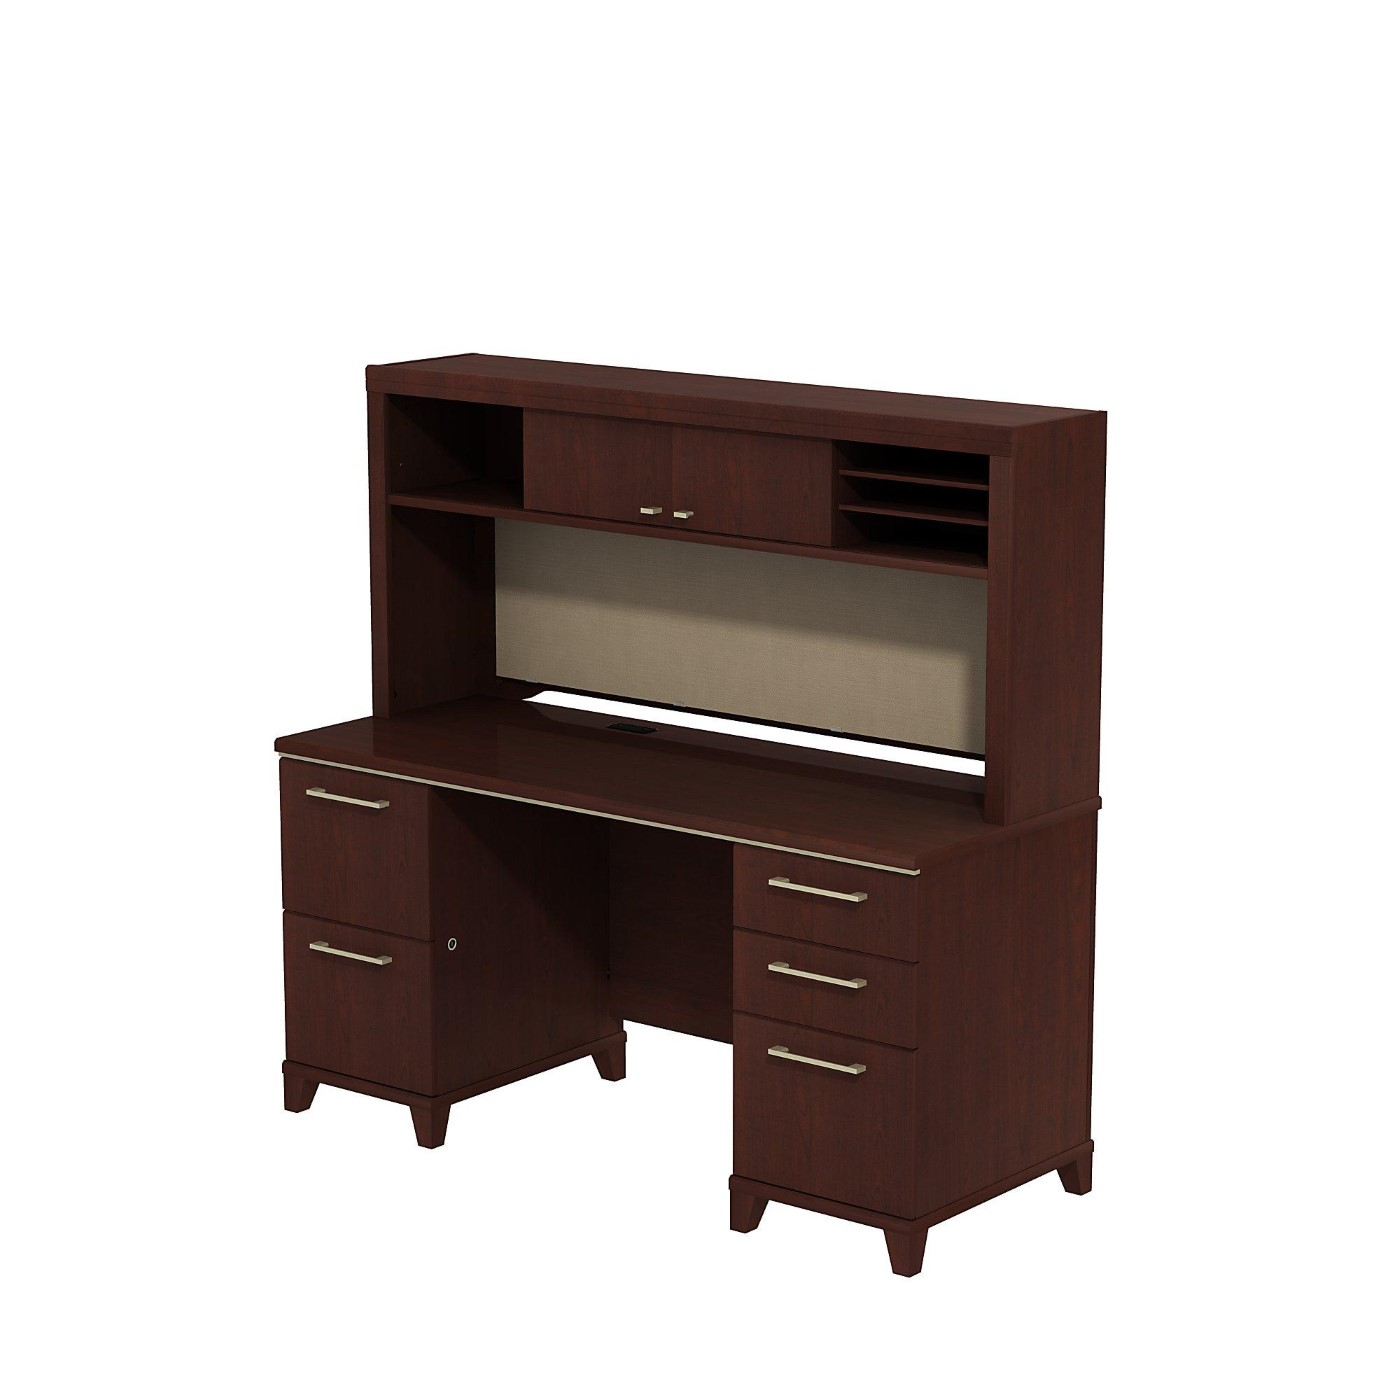 <font color=#c60><b>BUSH BUSINESS FURNITURE ENTERPRISE 60W X 24D OFFICE DESK WITH HUTCH AND 2 PEDESTALS. FREE SHIPPING</font></b>